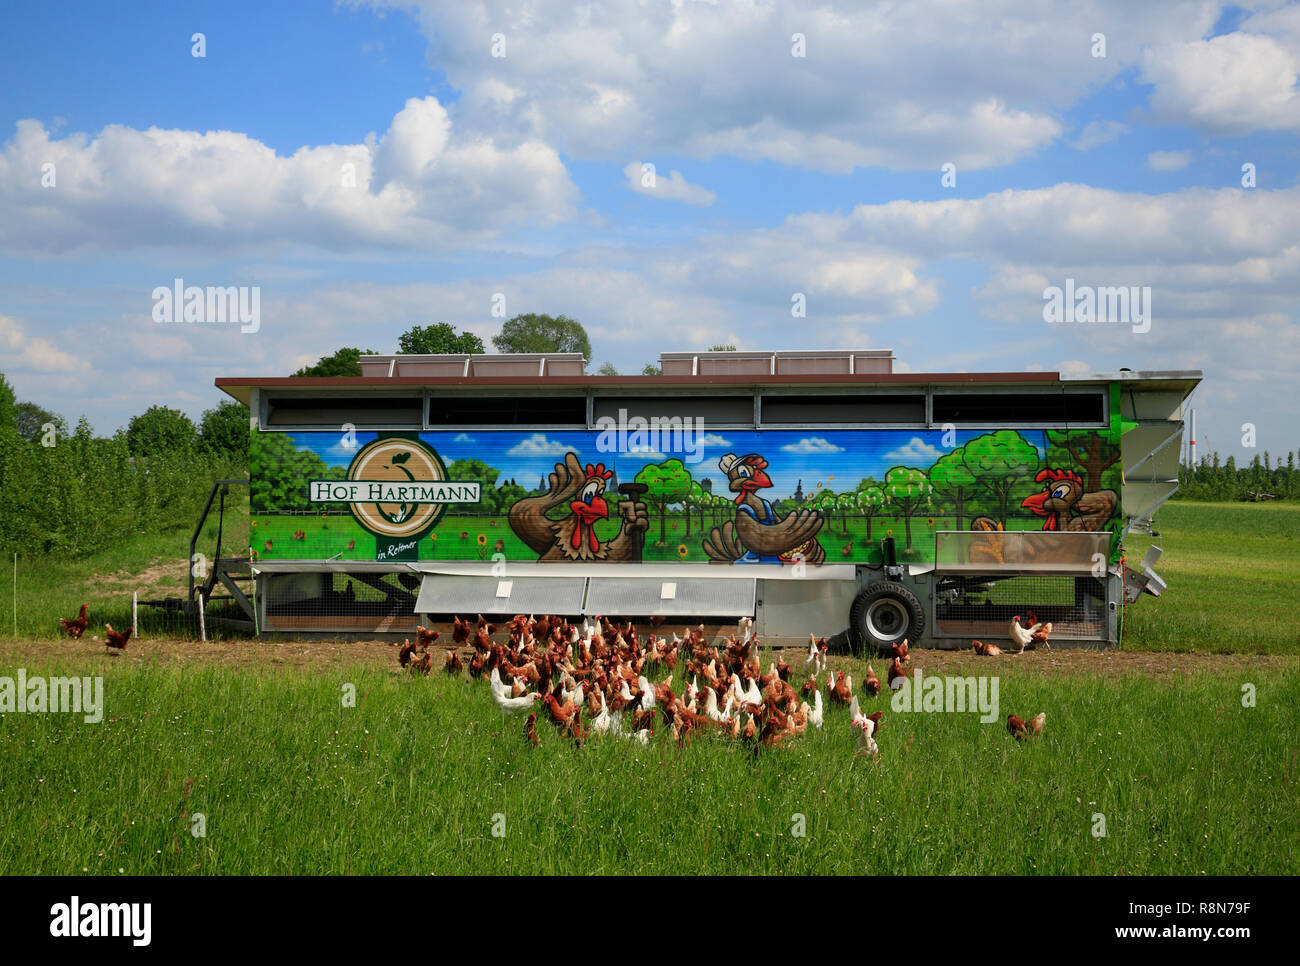 free growing chicken, Rettmer near  Lueneburg, Lüneburg, Lower Saxony, Germany, Europe - Stock Image